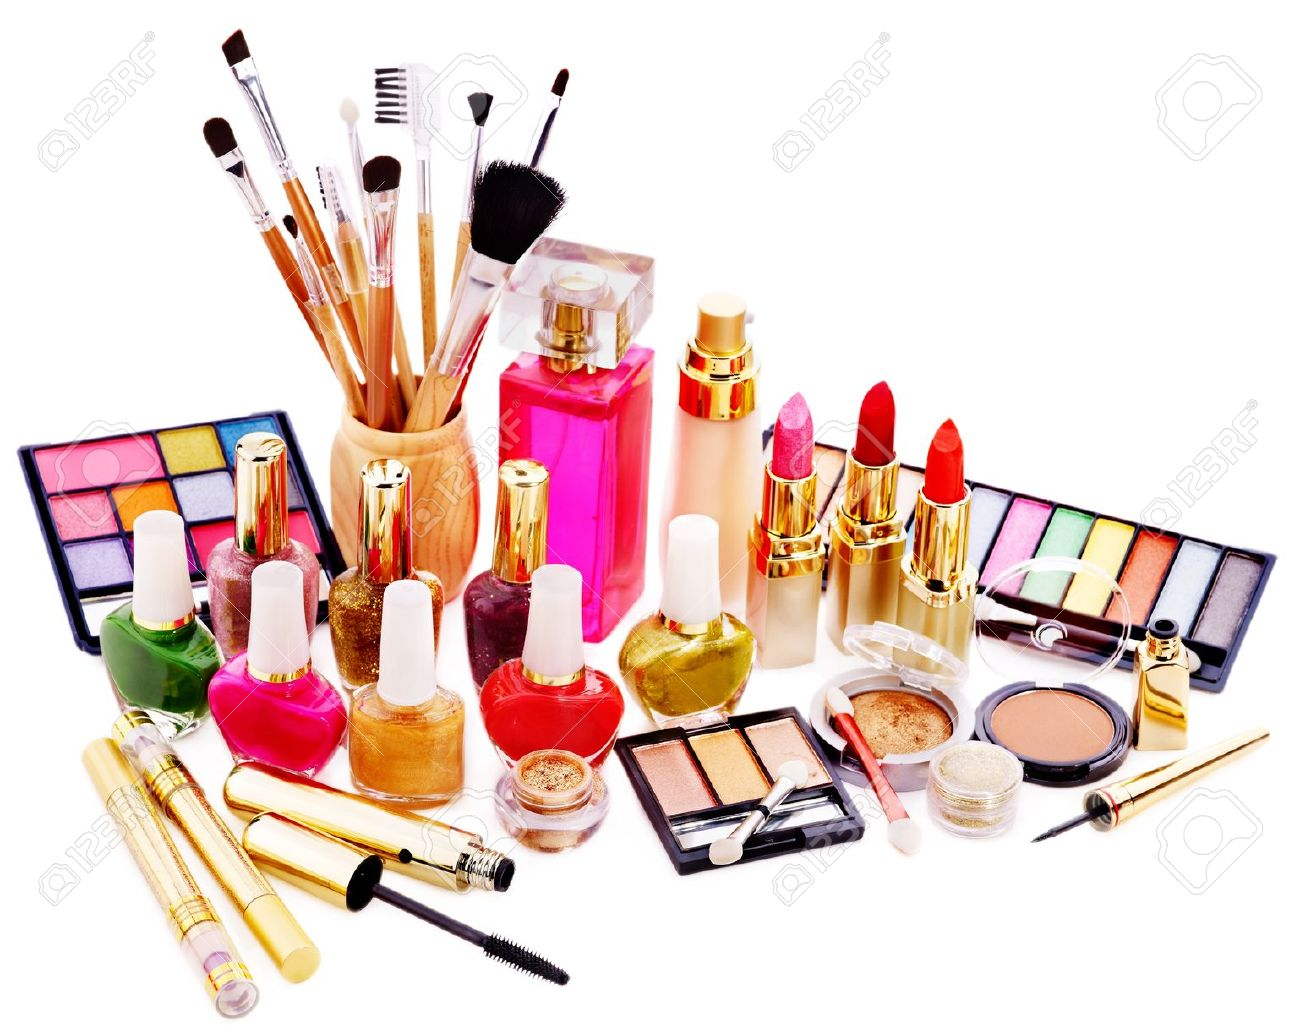 Online Store - The Best Place to Shop Beauty Products and Clothing